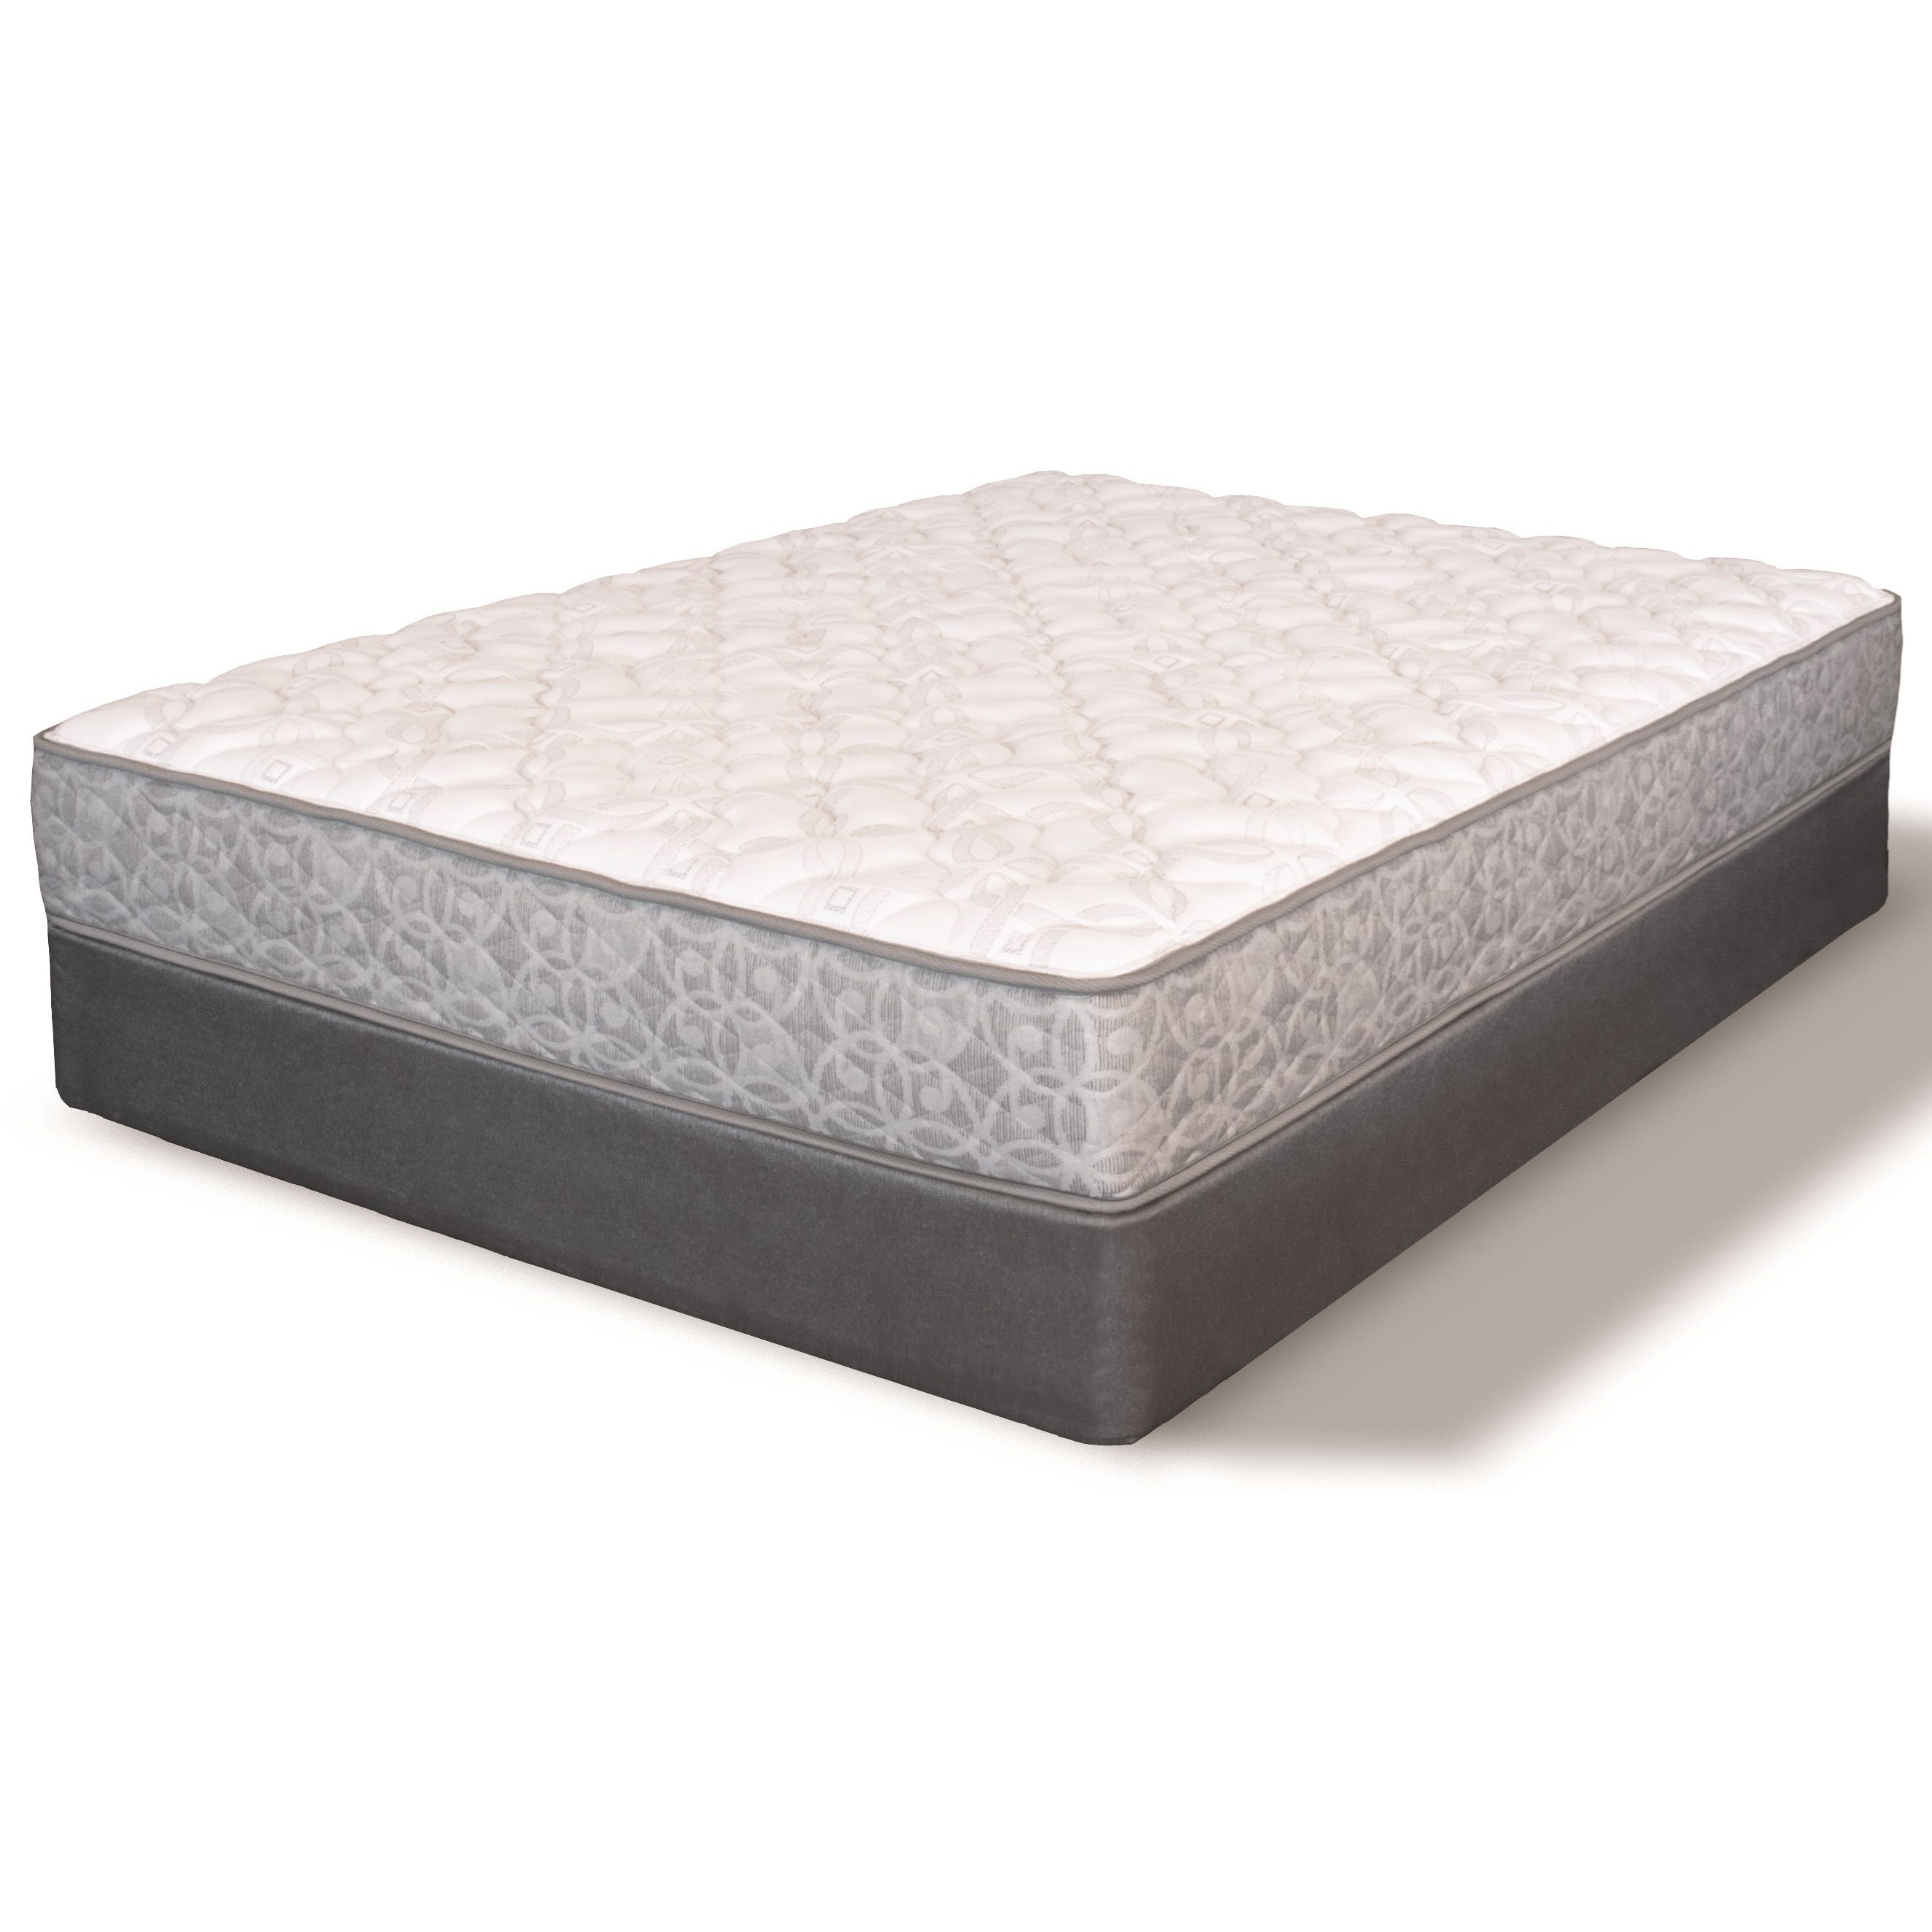 Low Profile Innerspring Mattress Serta Ms Heidleburg Firm Queen Firm Innerspring Mattress